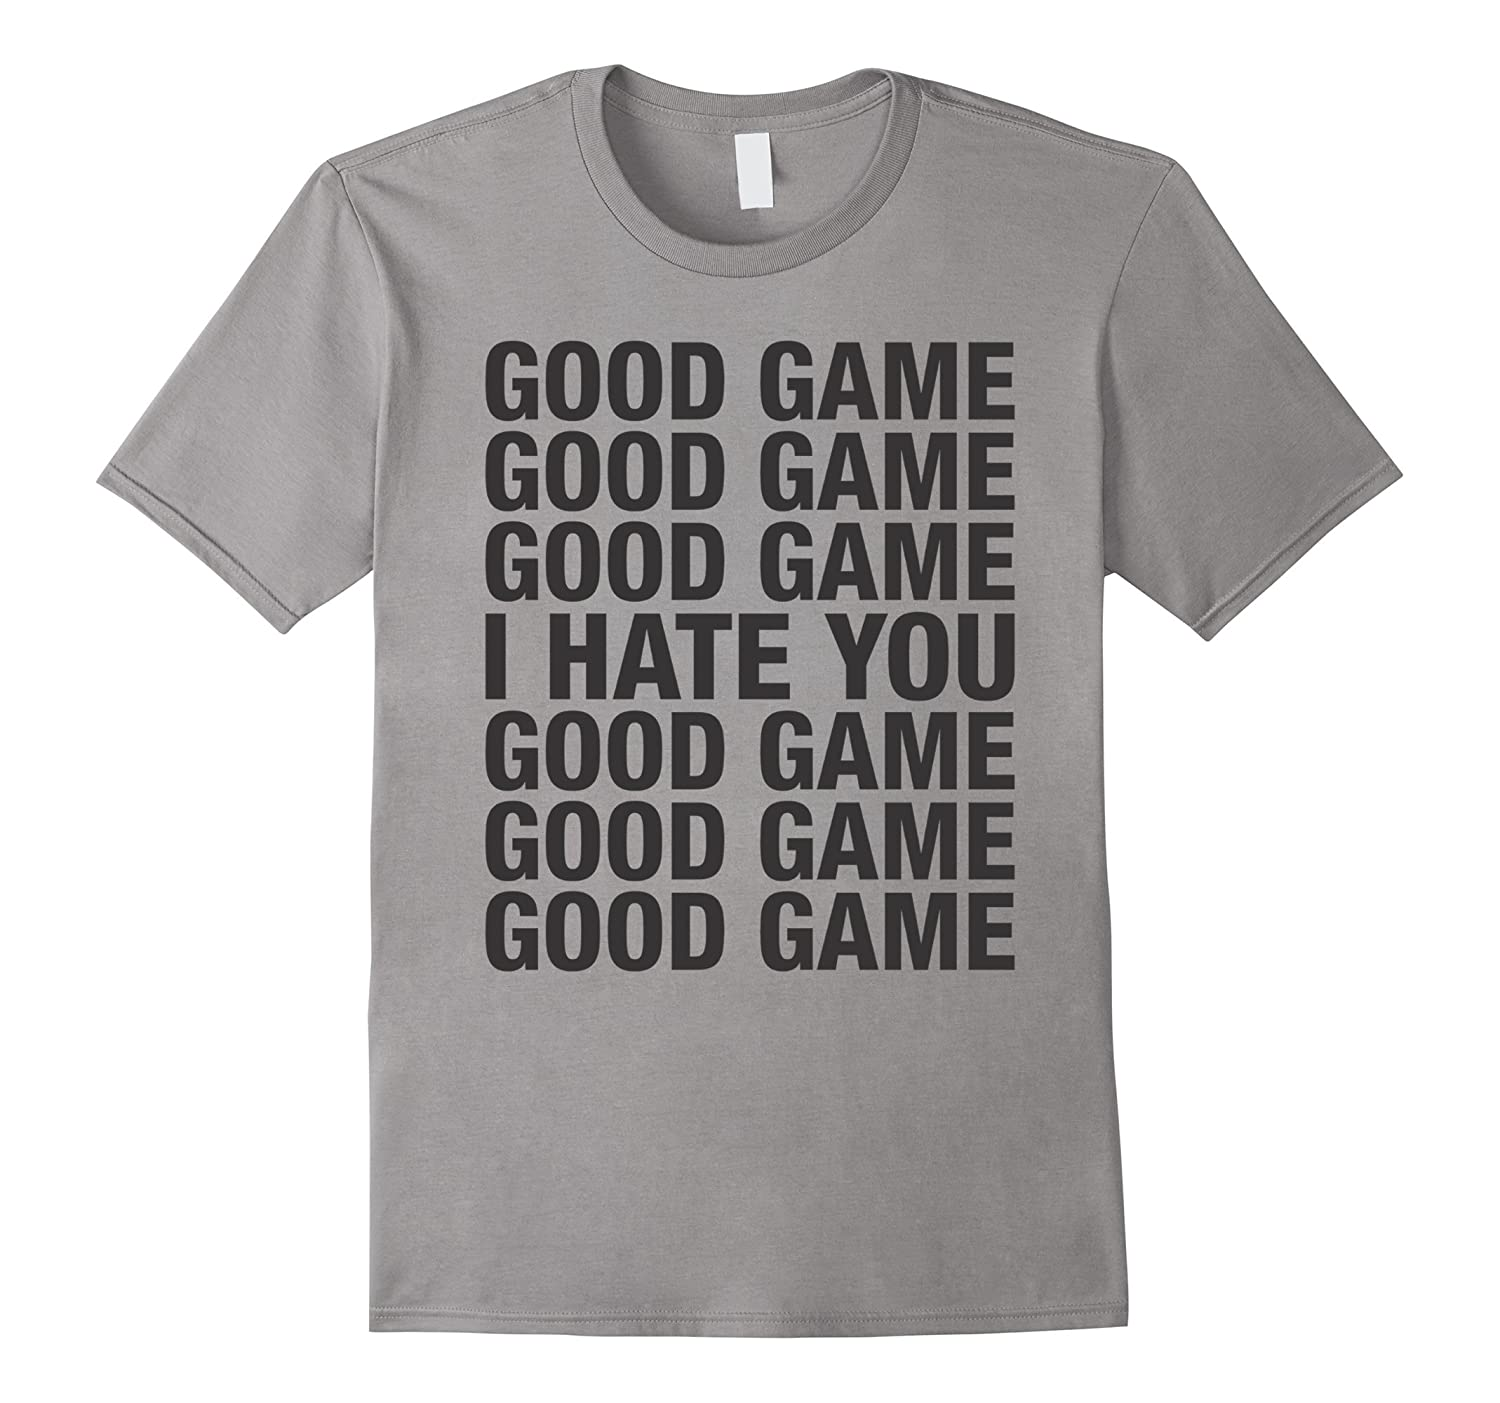 6284b5364 Unsportsmanlike Tees: Good Game Good Game I Hate You T-Shirt-ANZ ...